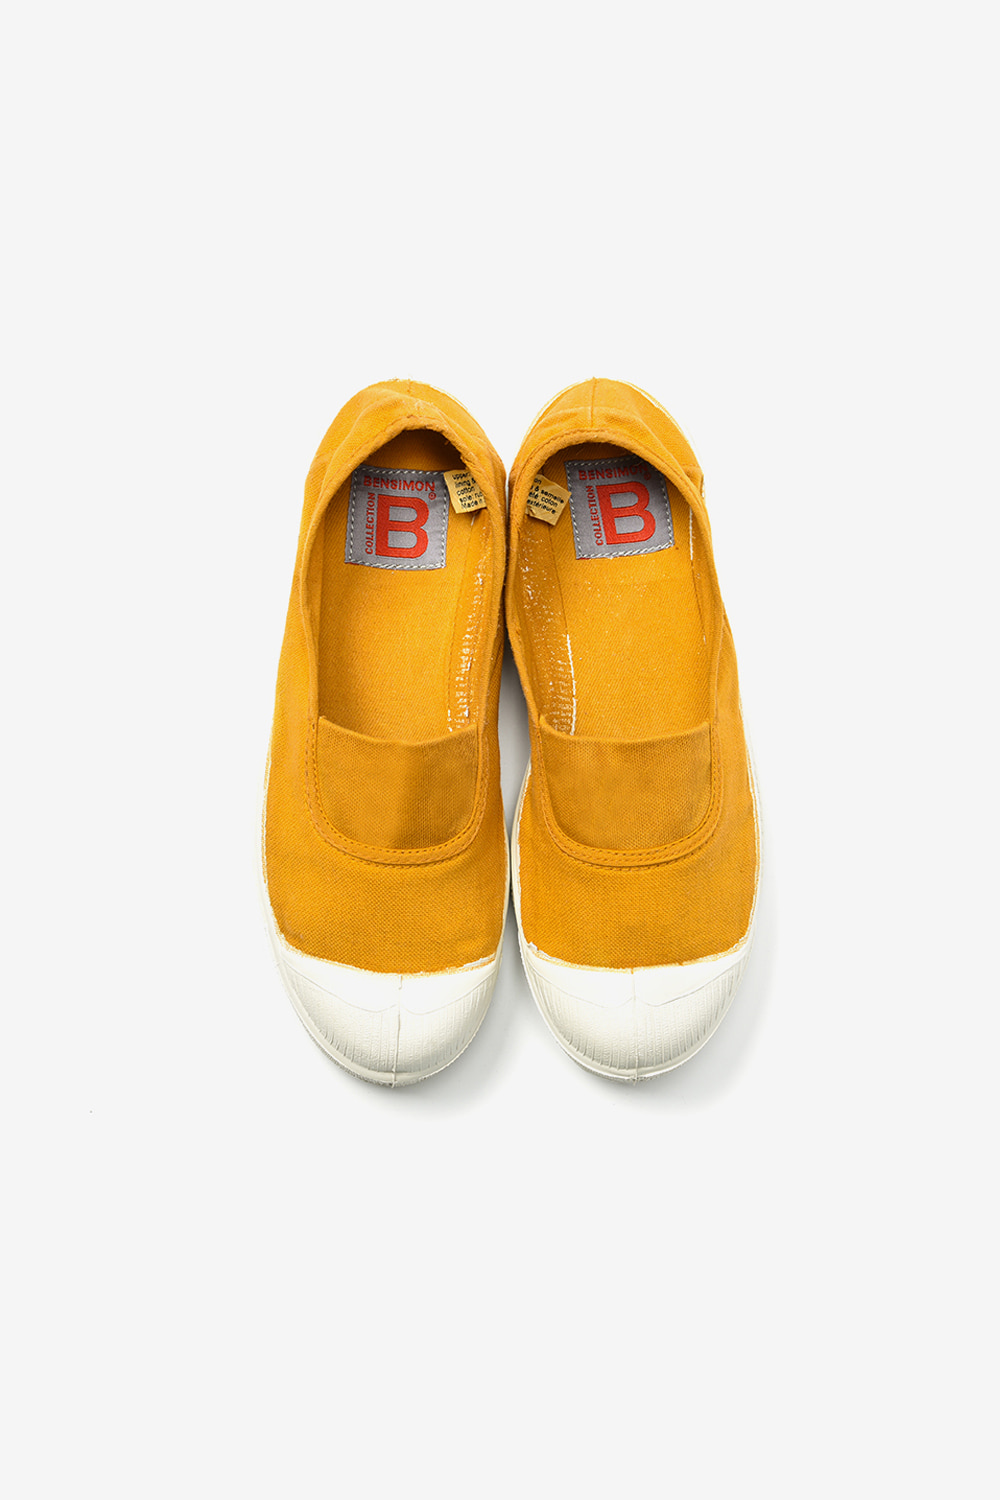 [Woman Elastique] Yellow earth BS9FSO111YL